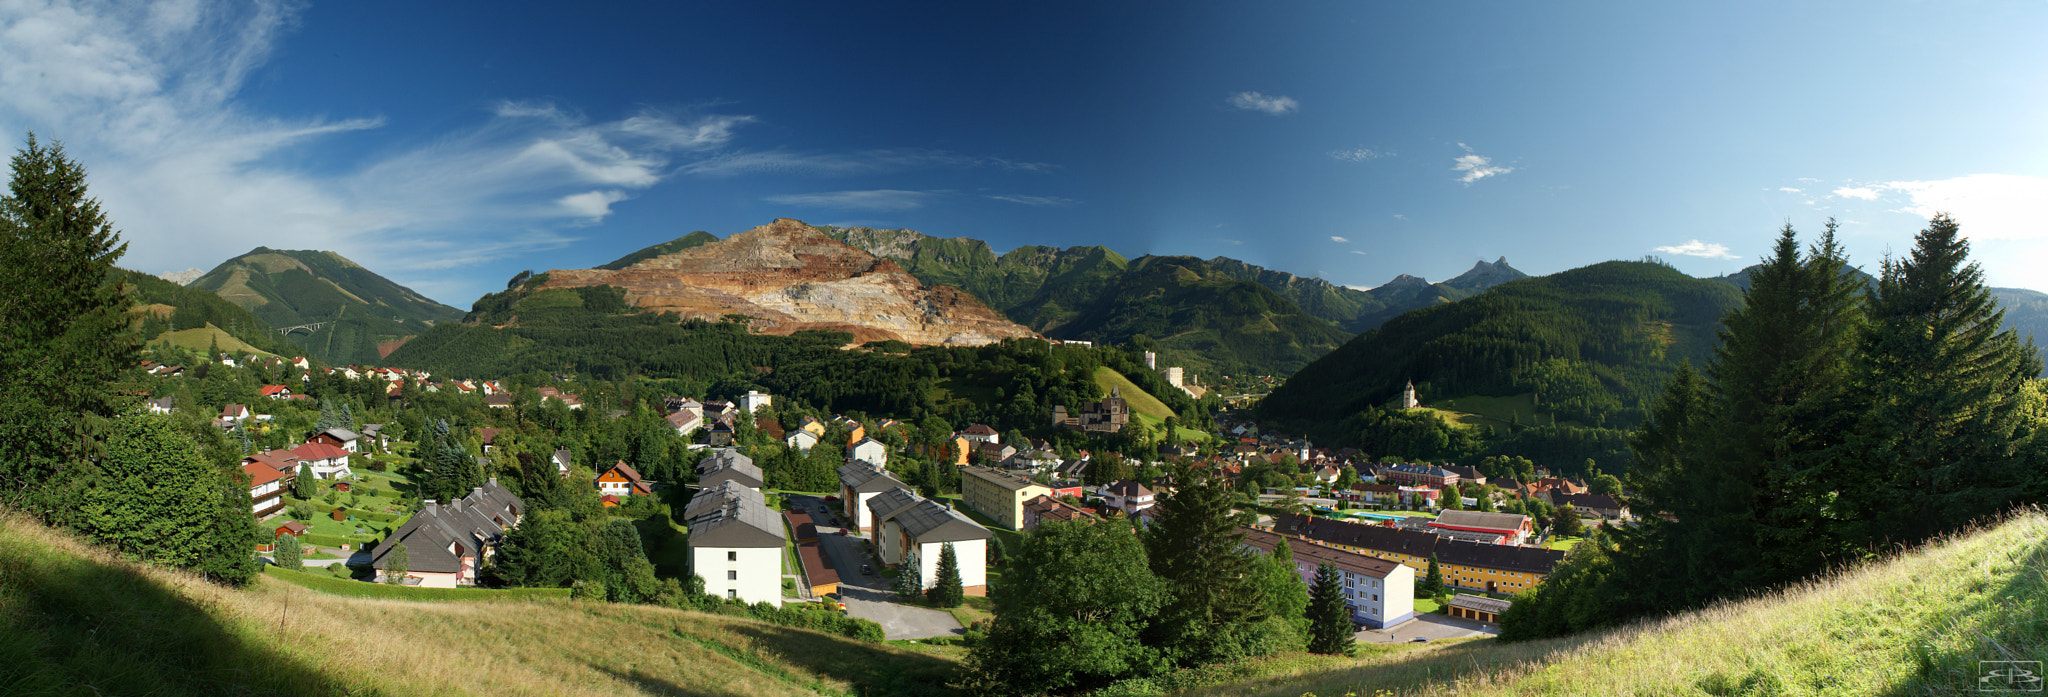 Photograph Panorama over Eisenerz by Rene BERNHARD on 500px